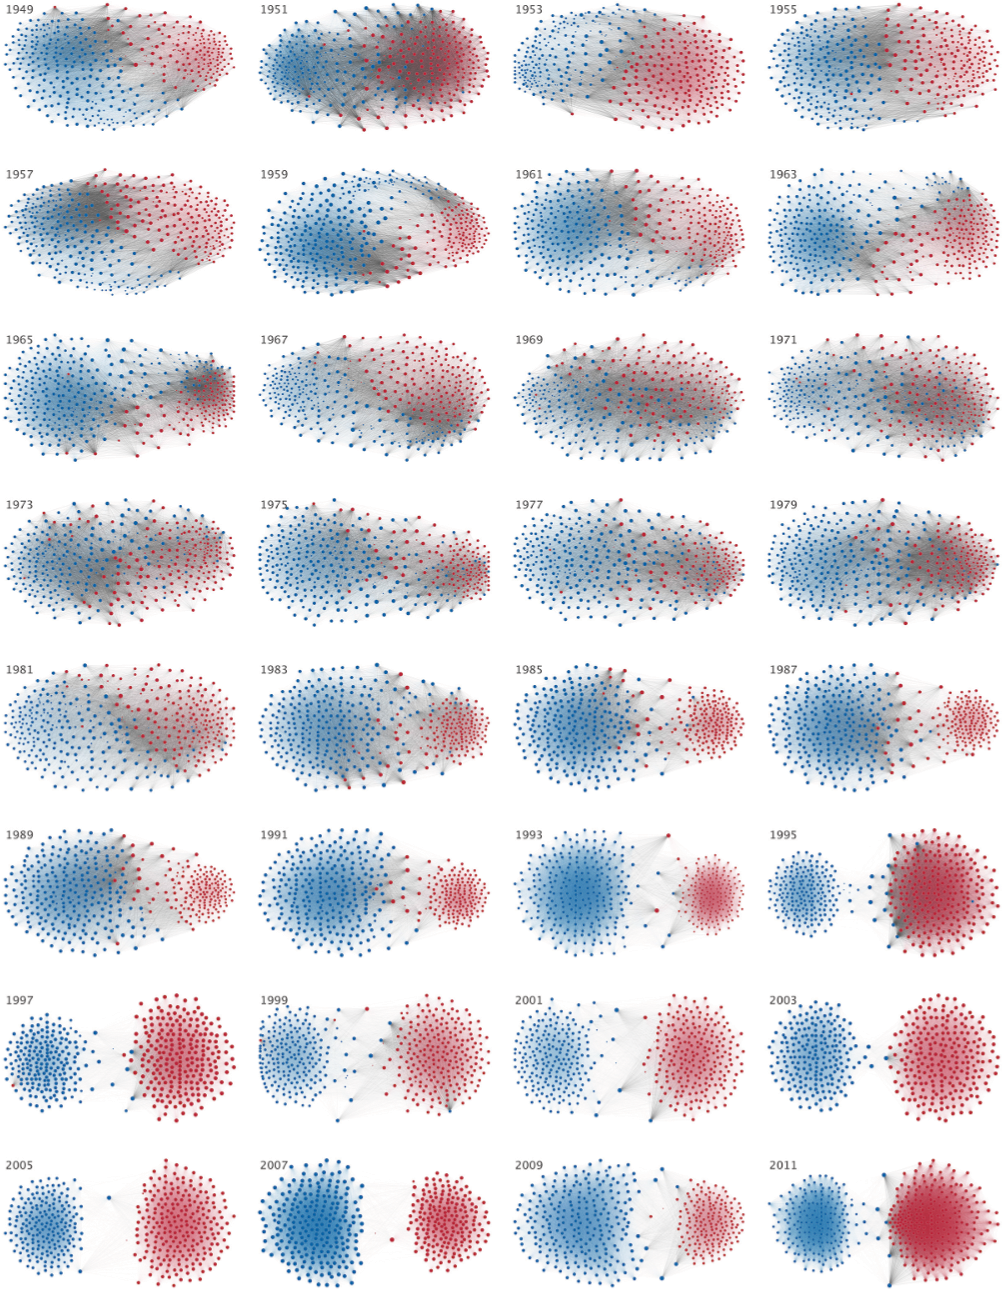 Partisanship in the US House of Representatives